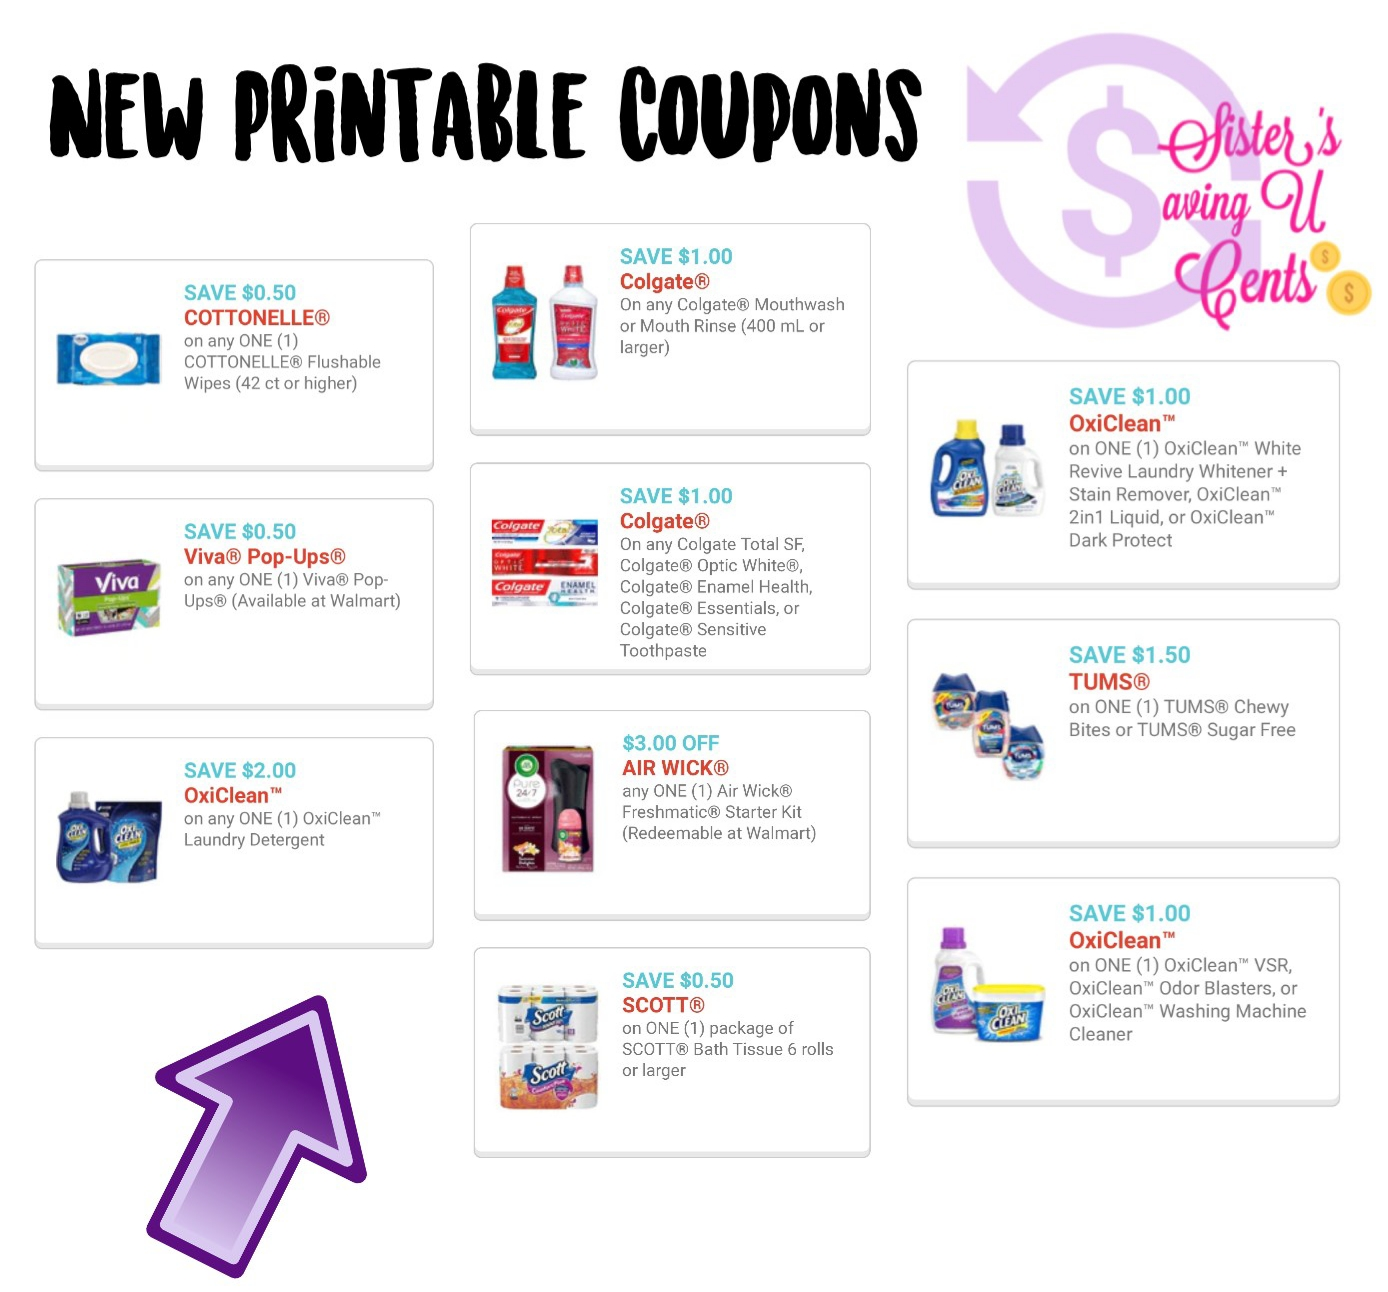 photograph relating to Cottonelle Coupons Printable named Fresh Printable Coupon codes !!